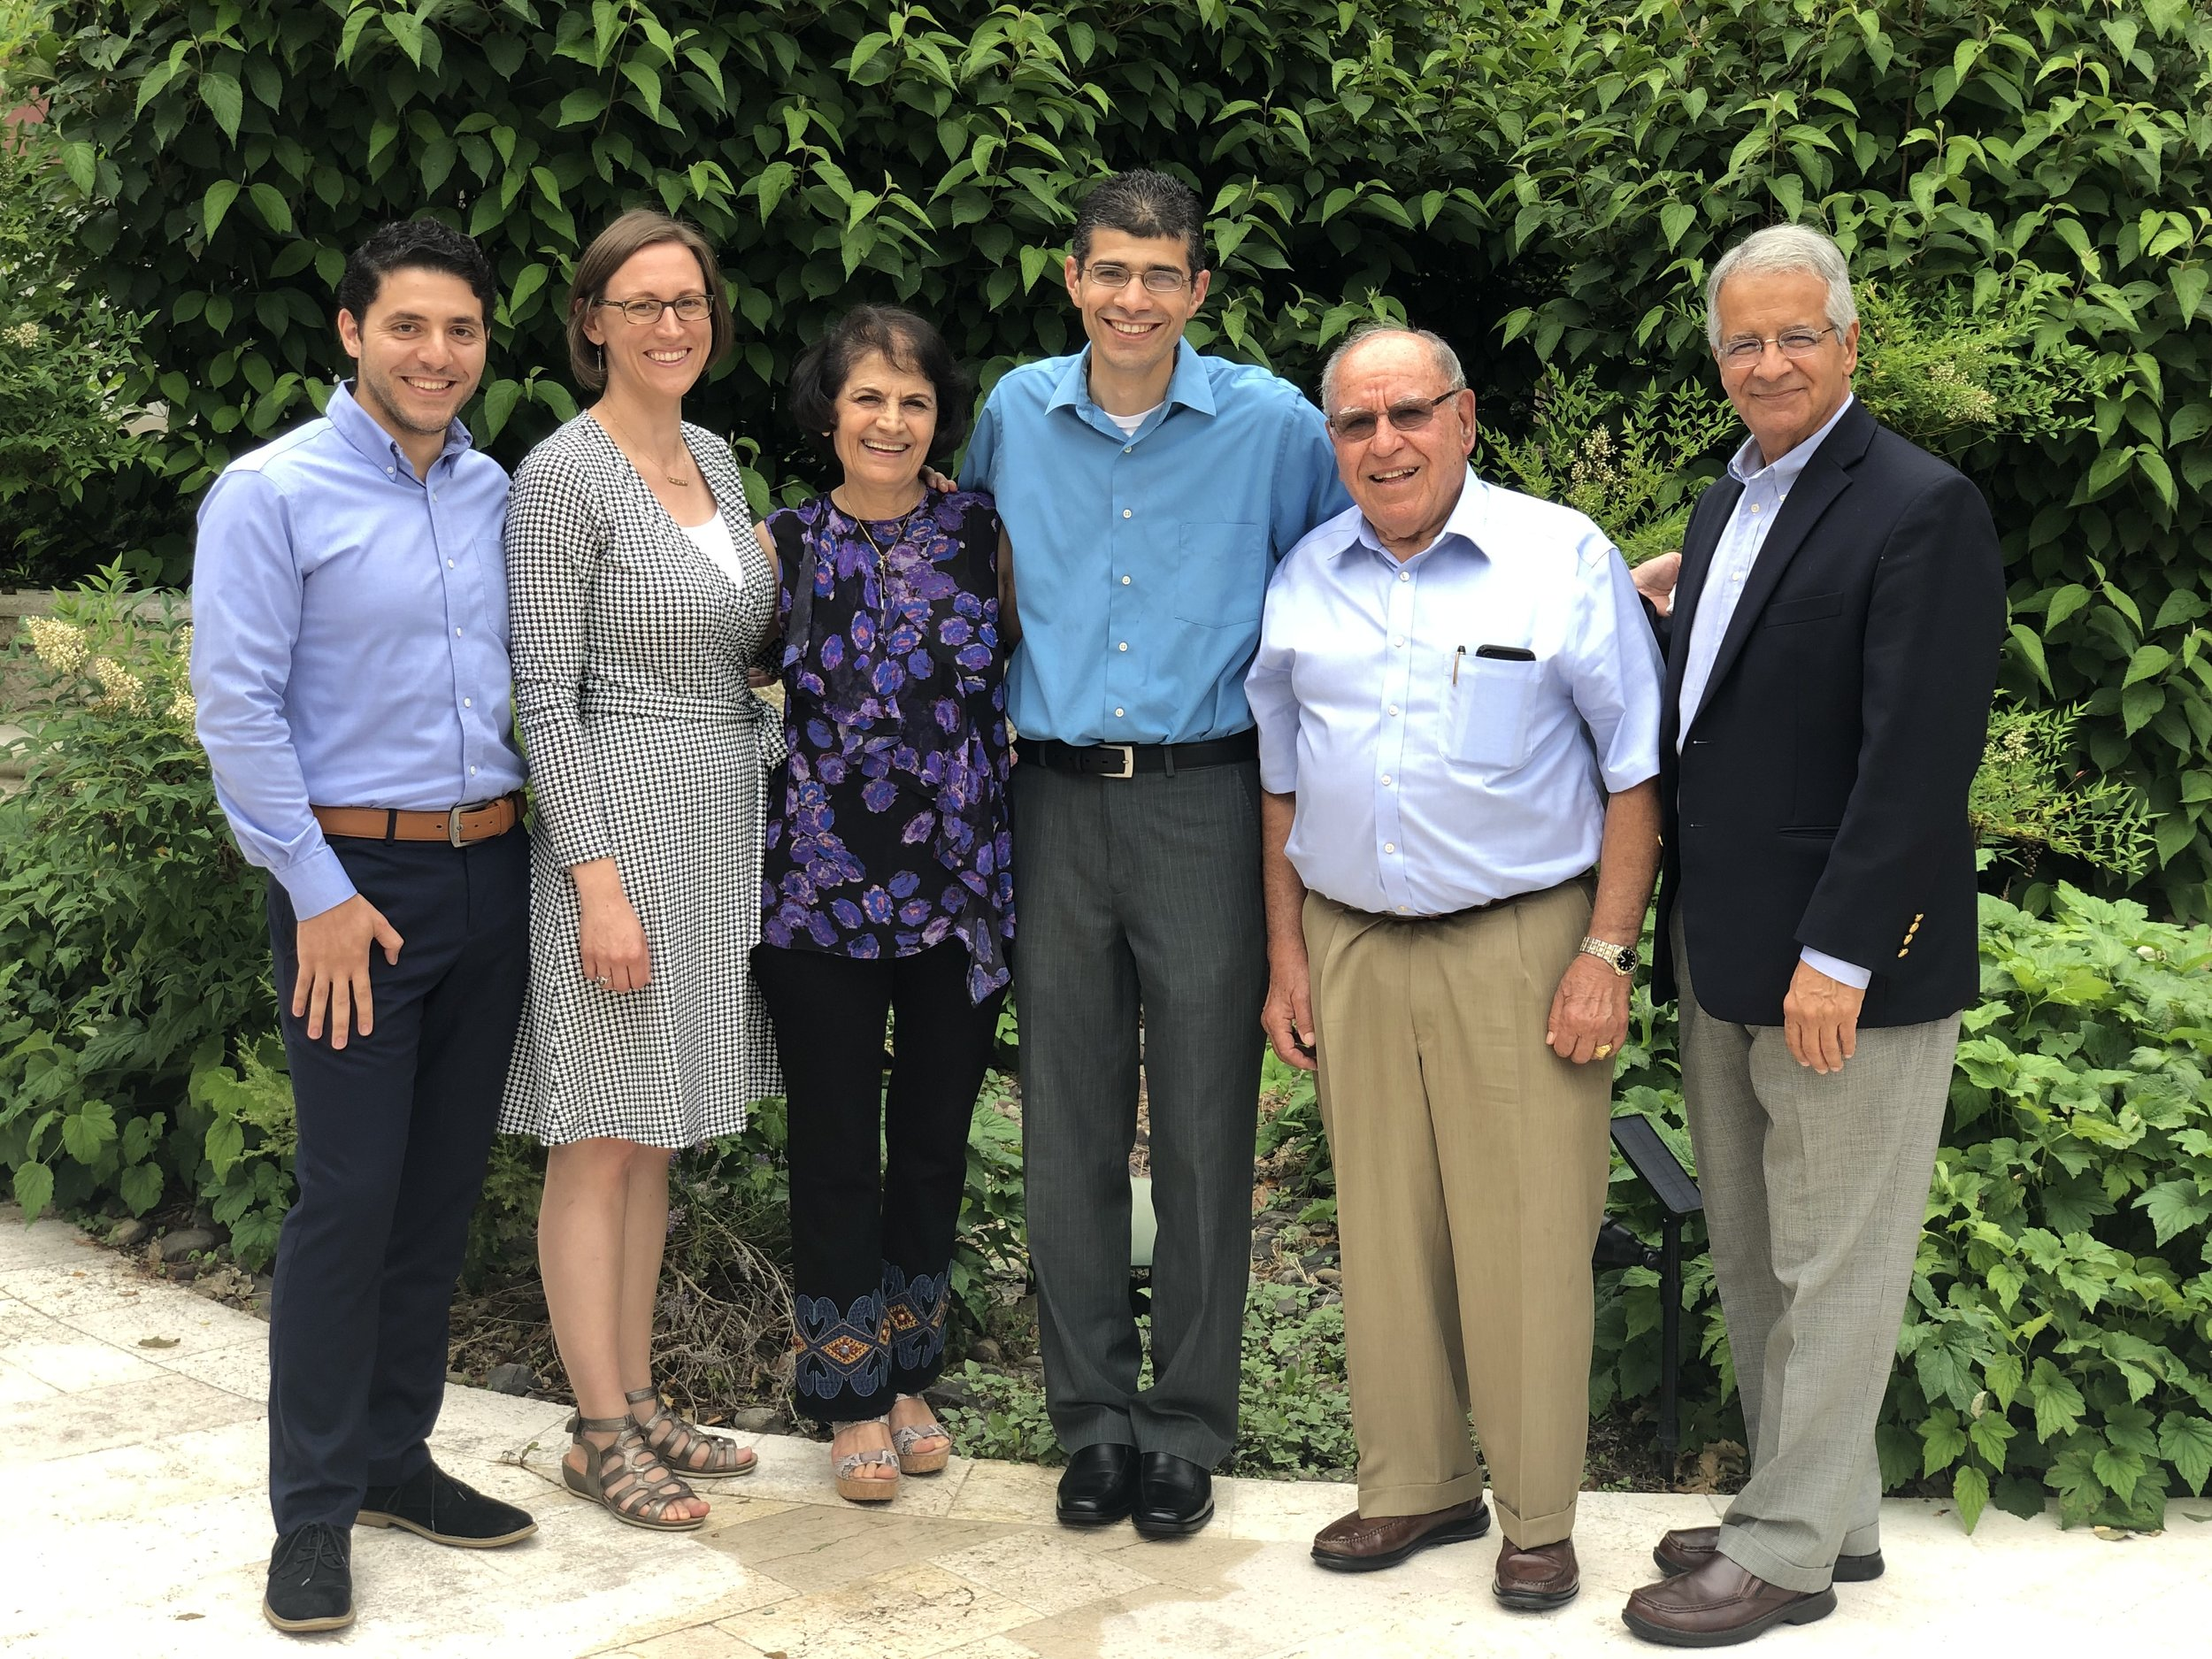 UNRWA Alumni Association (USA) Steering Committee, 2019 (from left to right: Mohammed Eid, Lori Mosher, Nada Kiblawi, Ahmed Arafat, Dr. Abed Musa, Ghassan Salameh. Not pictured: Rania Qawasma and Methal Debaj)